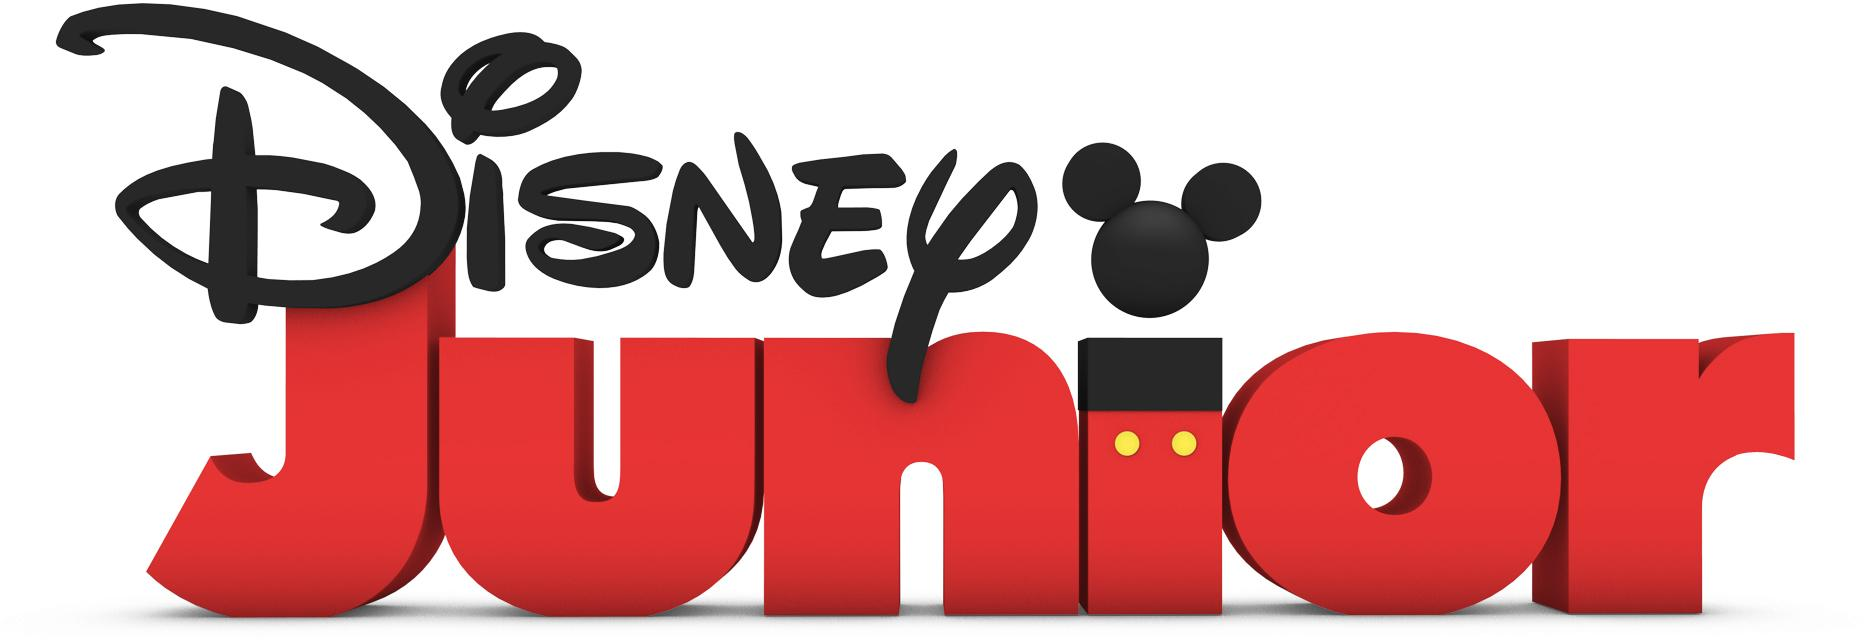 Canal 397 - Disney Junior